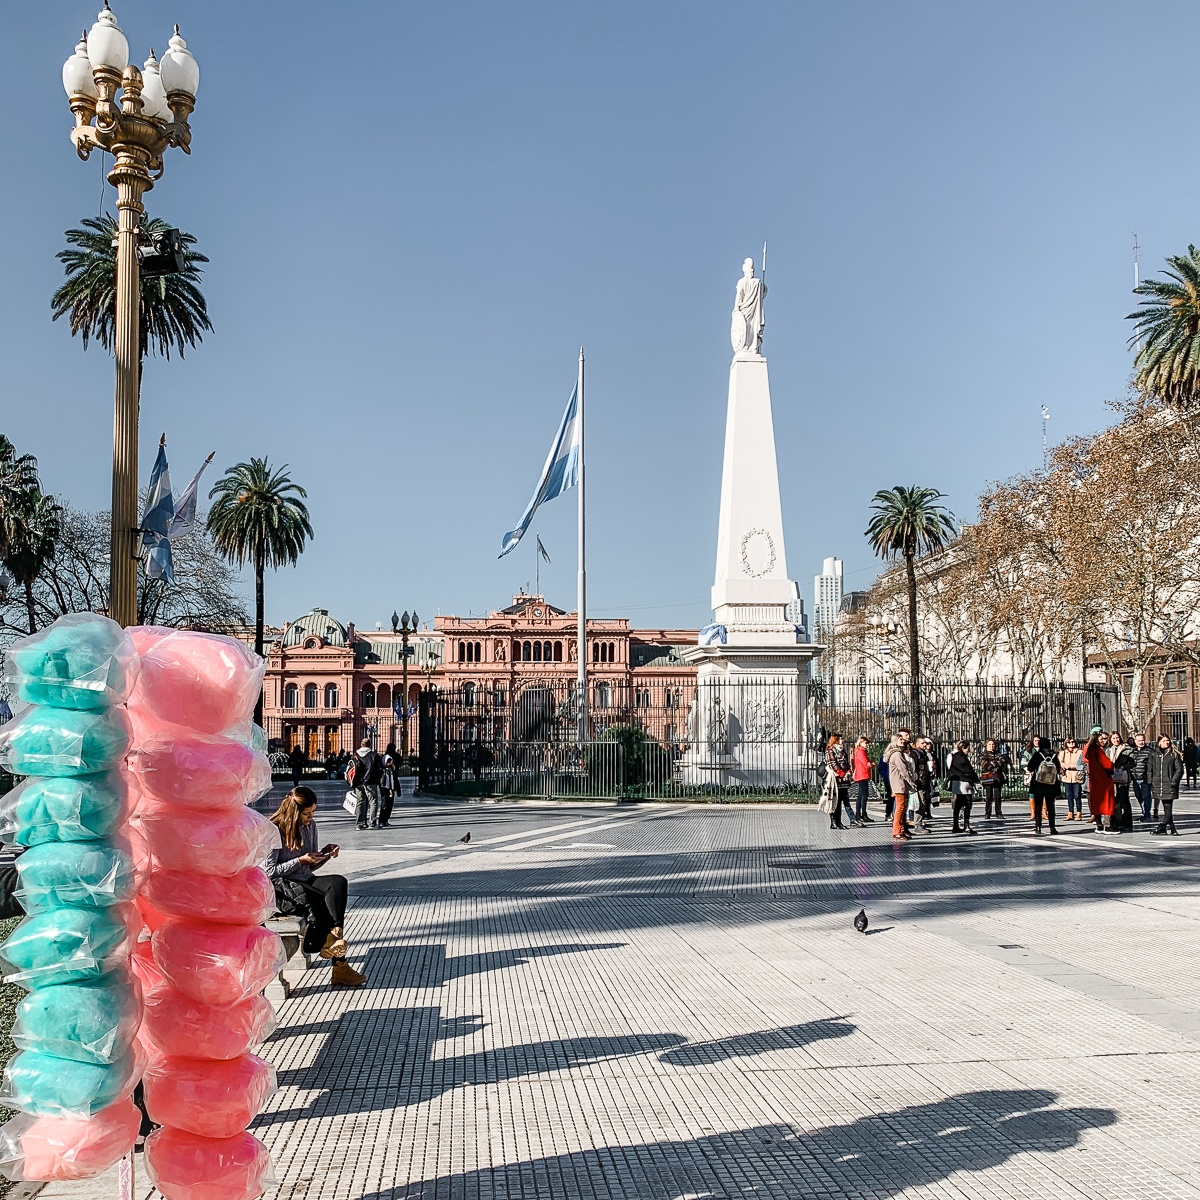 Cotton candy for sale at Plaza de Mayo